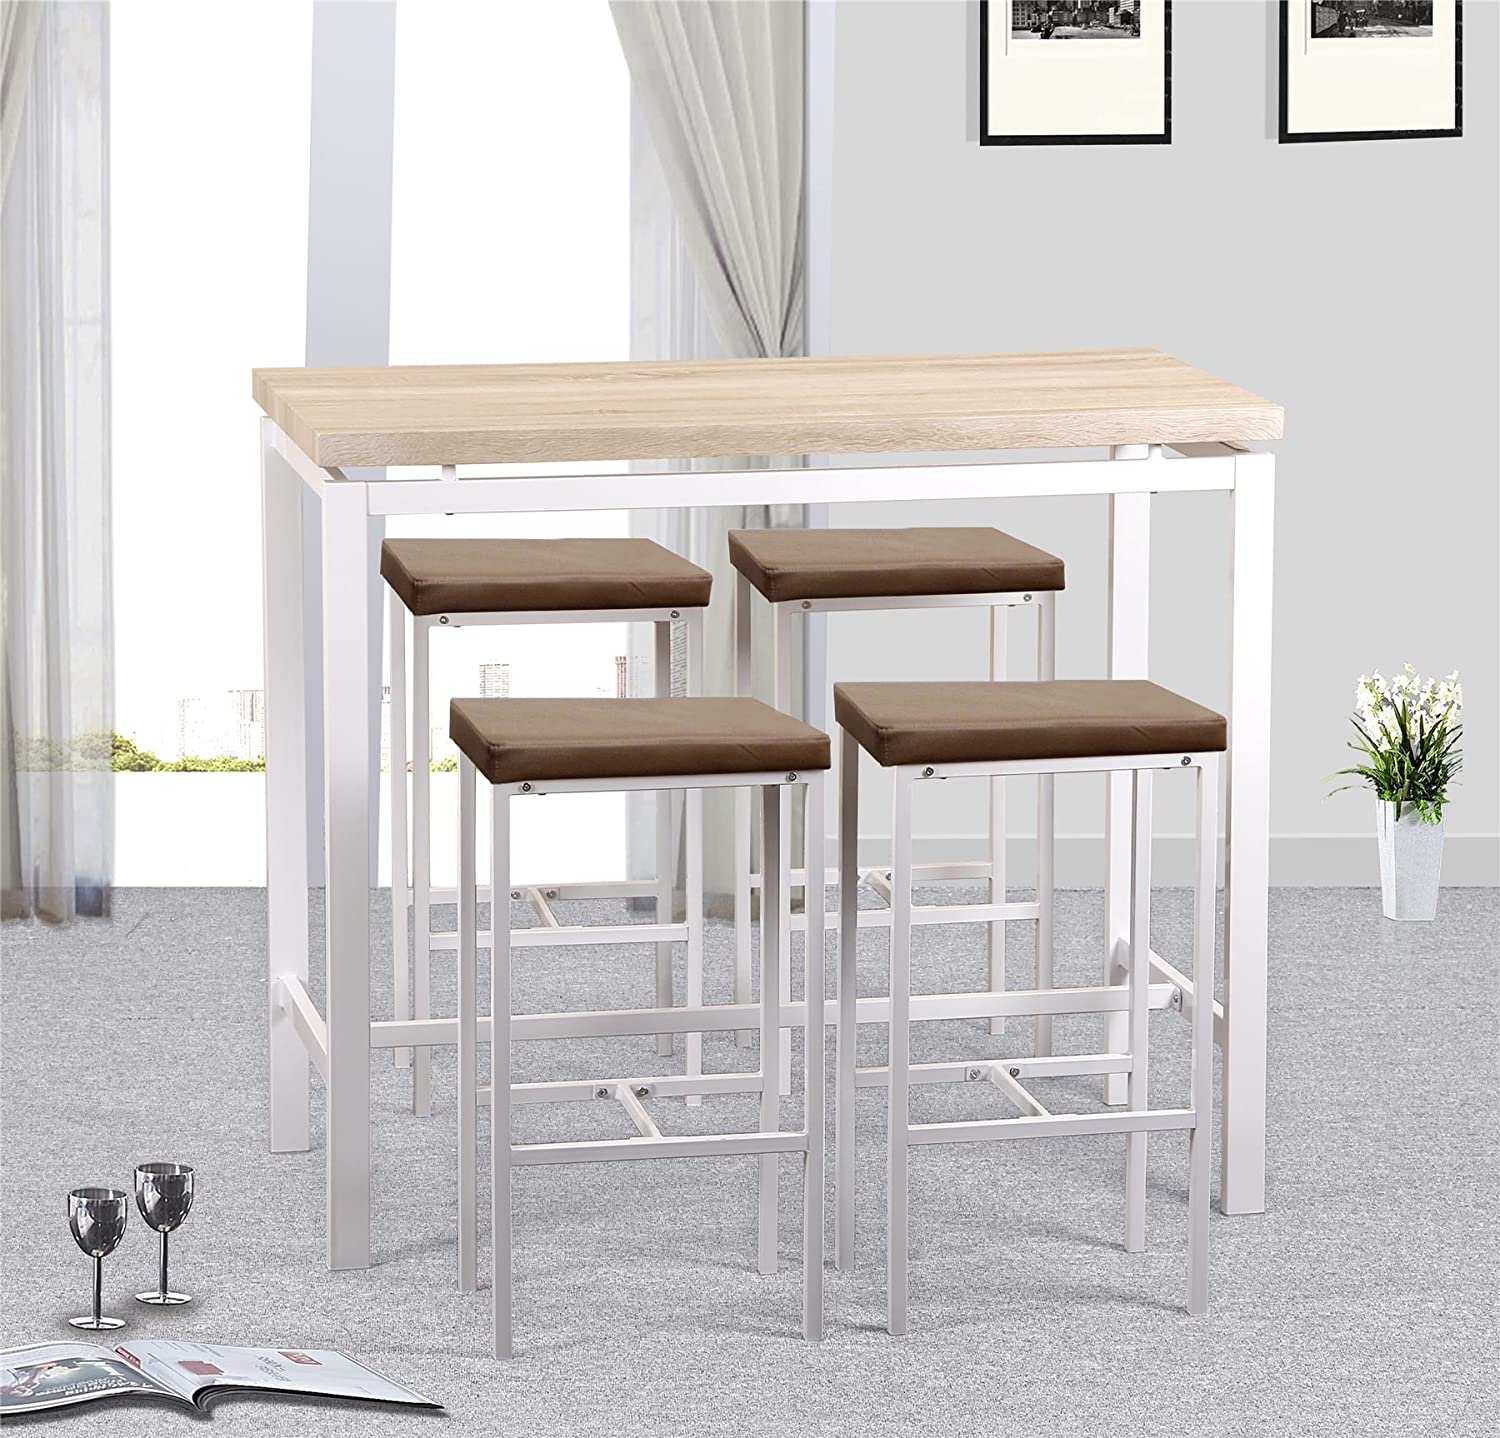 Gr8 Home High Counter Bar Set 5 Piece Breakfast Table And Chairs Bistro Pub Kitchen Dining Stools